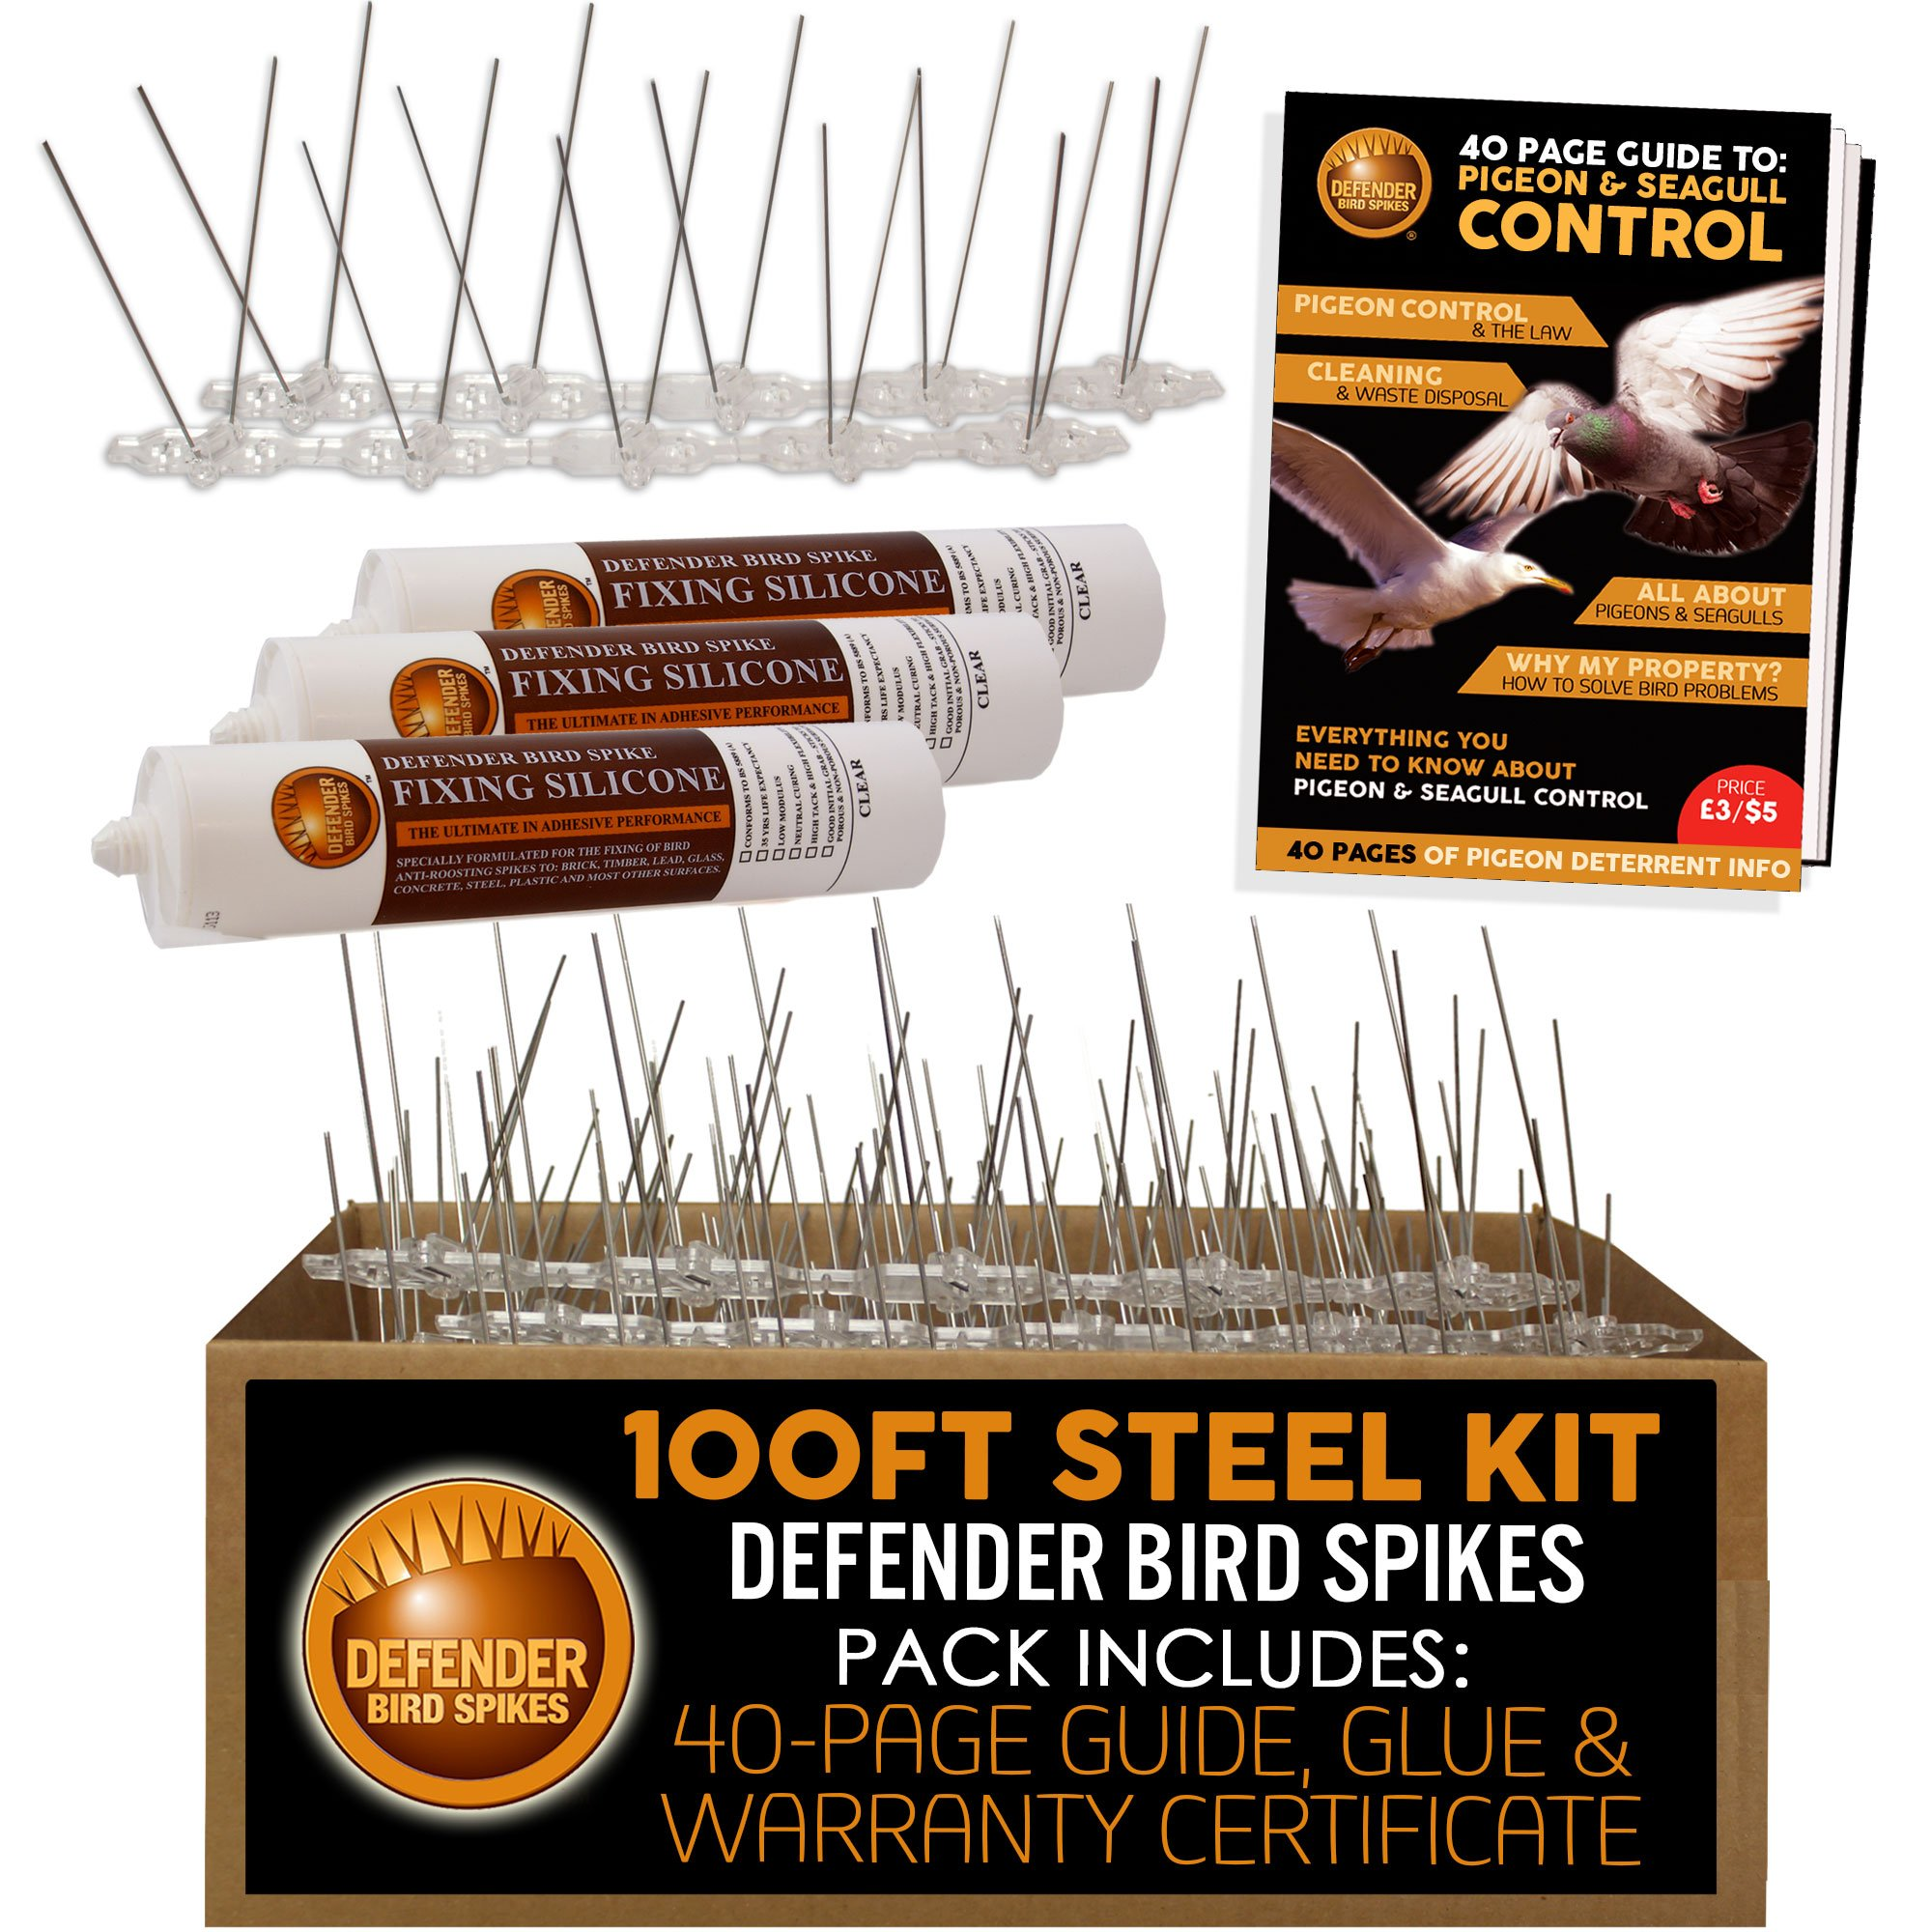 Defender Stainless Steel Pigeon Spikes Kit | 100 Feet with Glue | Various Size Kits by Defender Bird Spikes